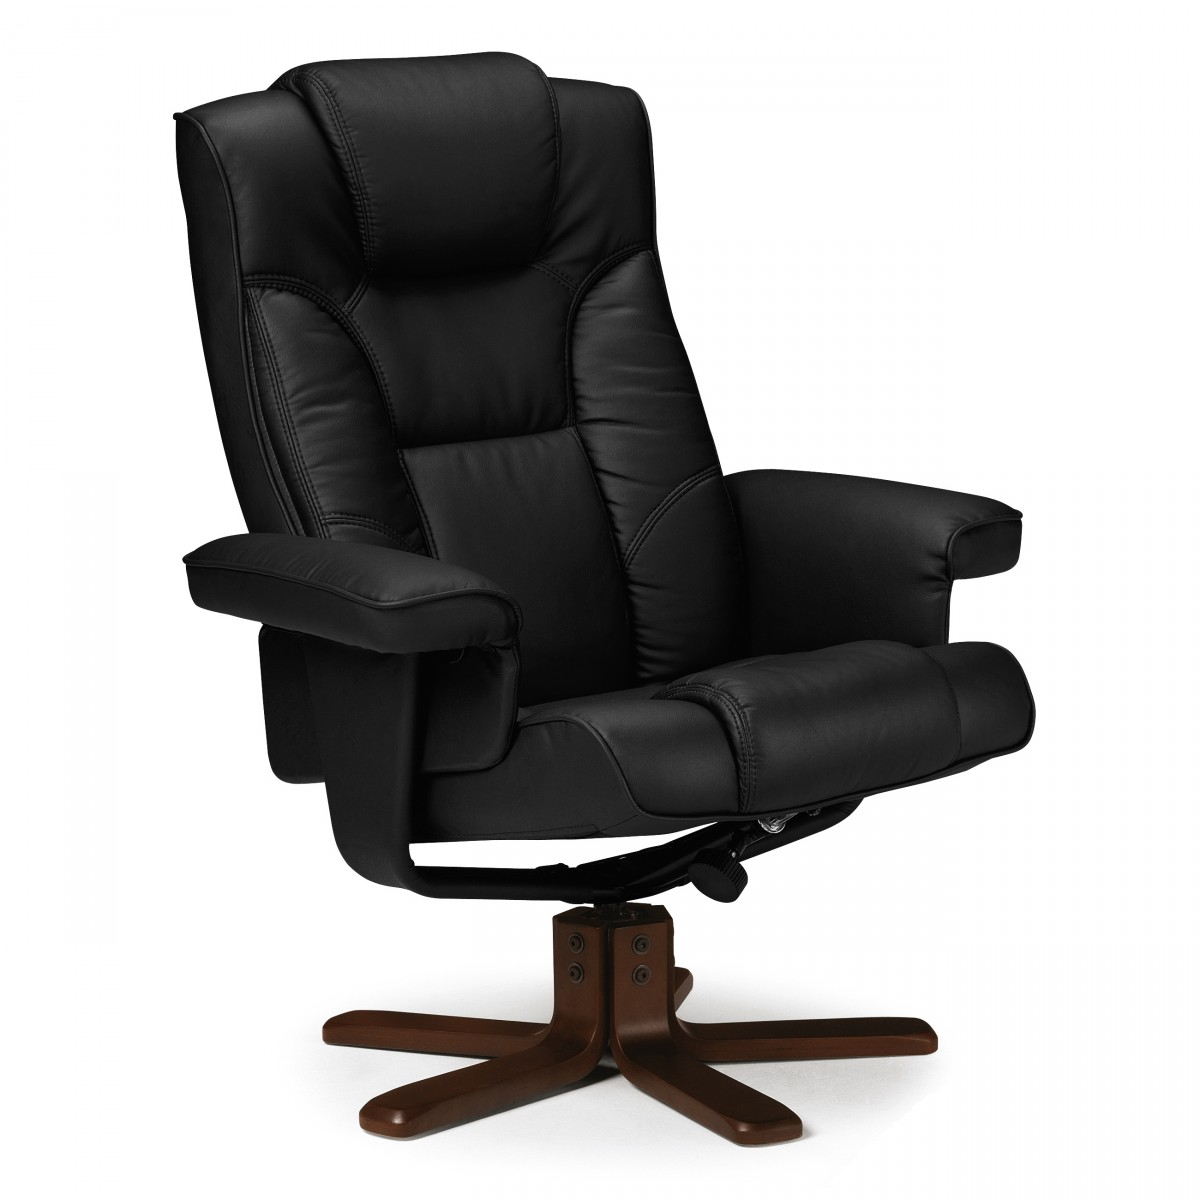 Swivel Recliner Chair Julian Bowen Malmo Swivel Recliner Chair Mal001 Mal003